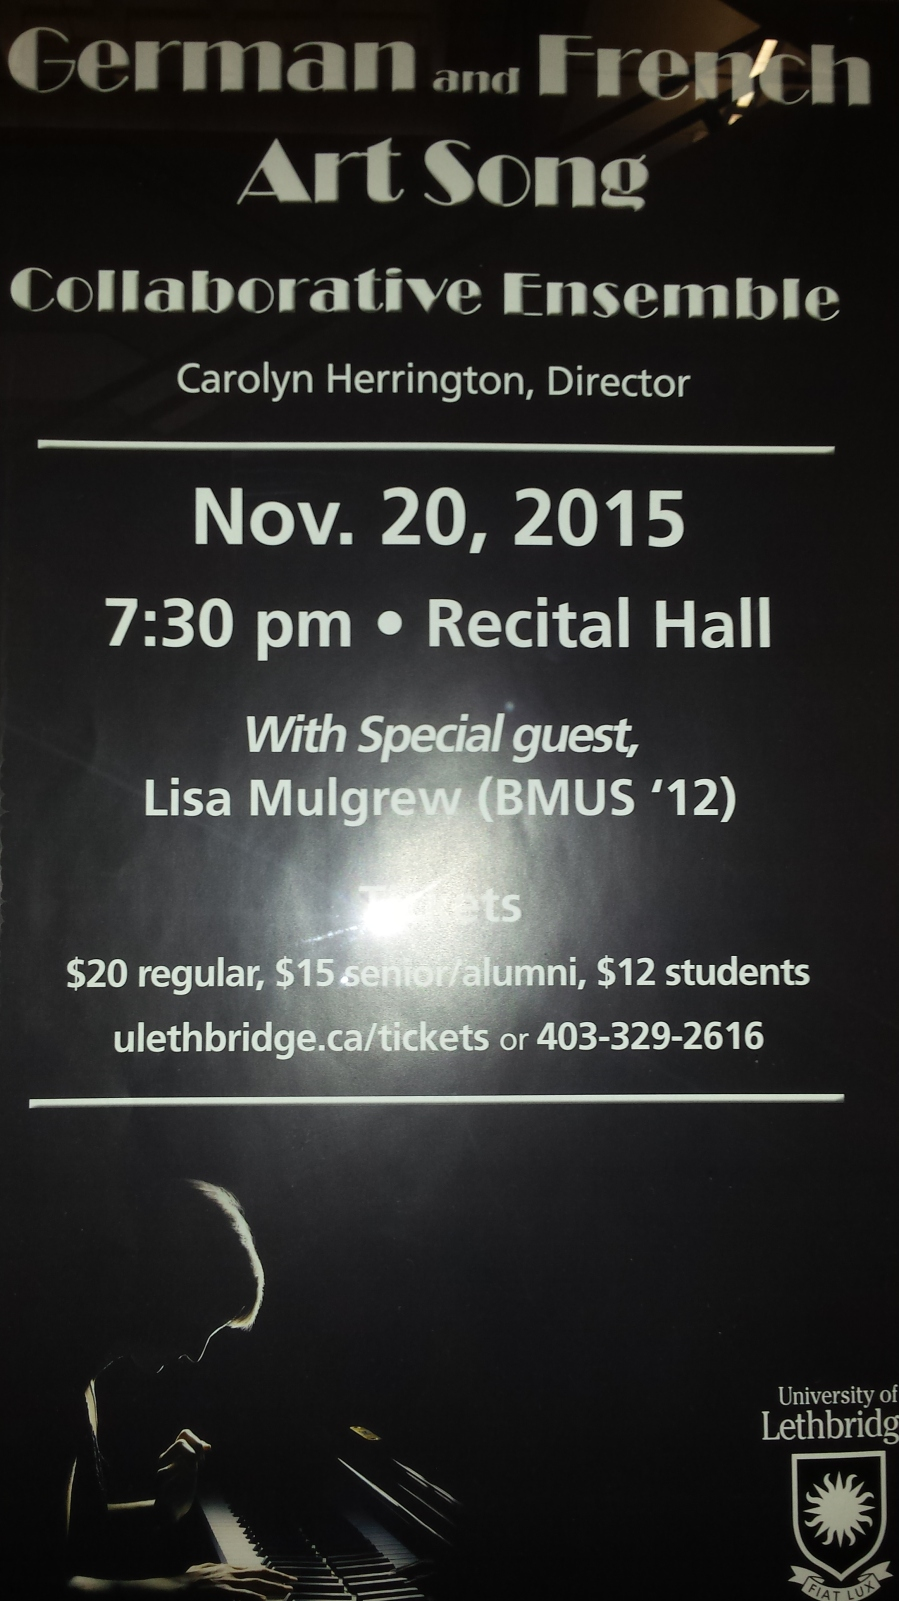 German and French Concert in Lethbridge